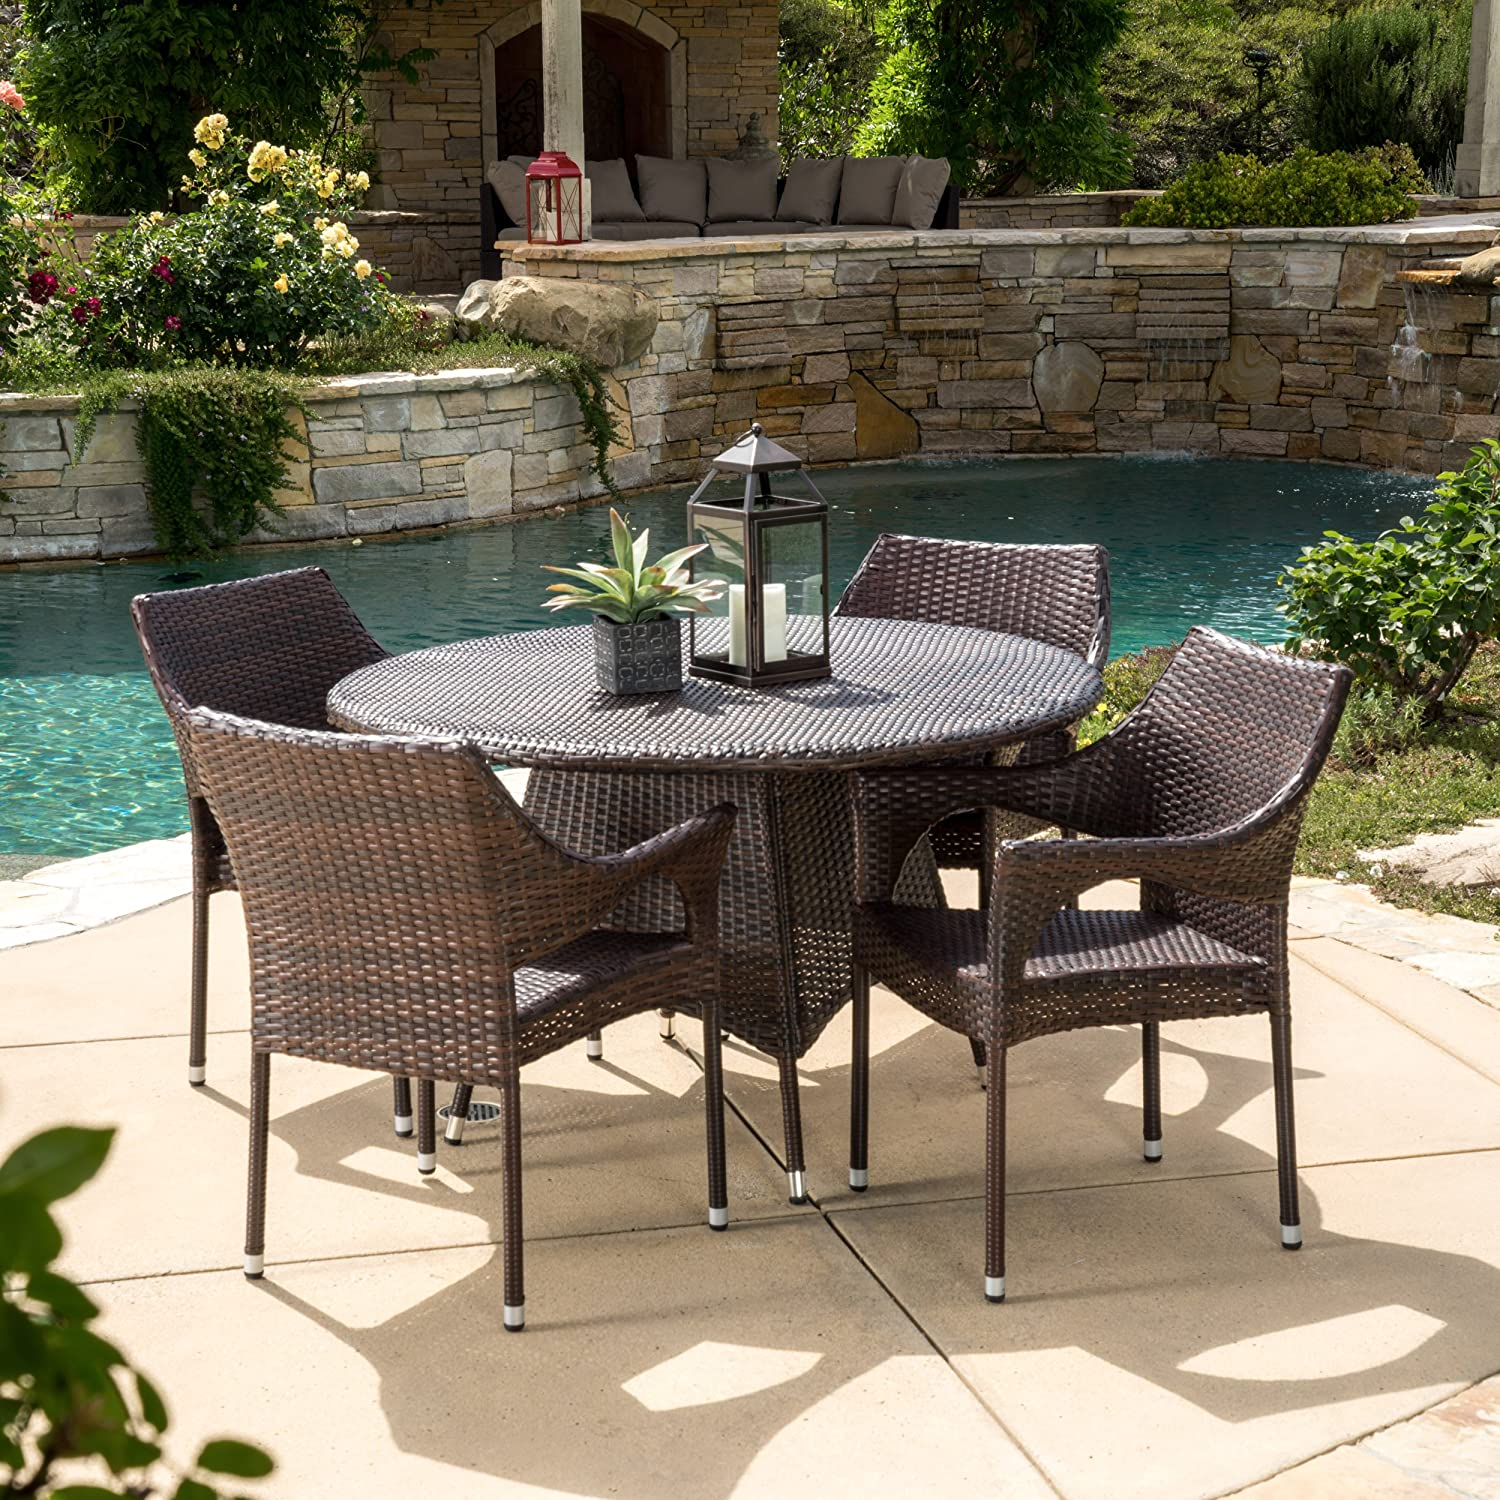 Christopher Knight Home Lorelei 5 Piece Outdoor Wicker Dining Set Perfect for Patio in Multibrown